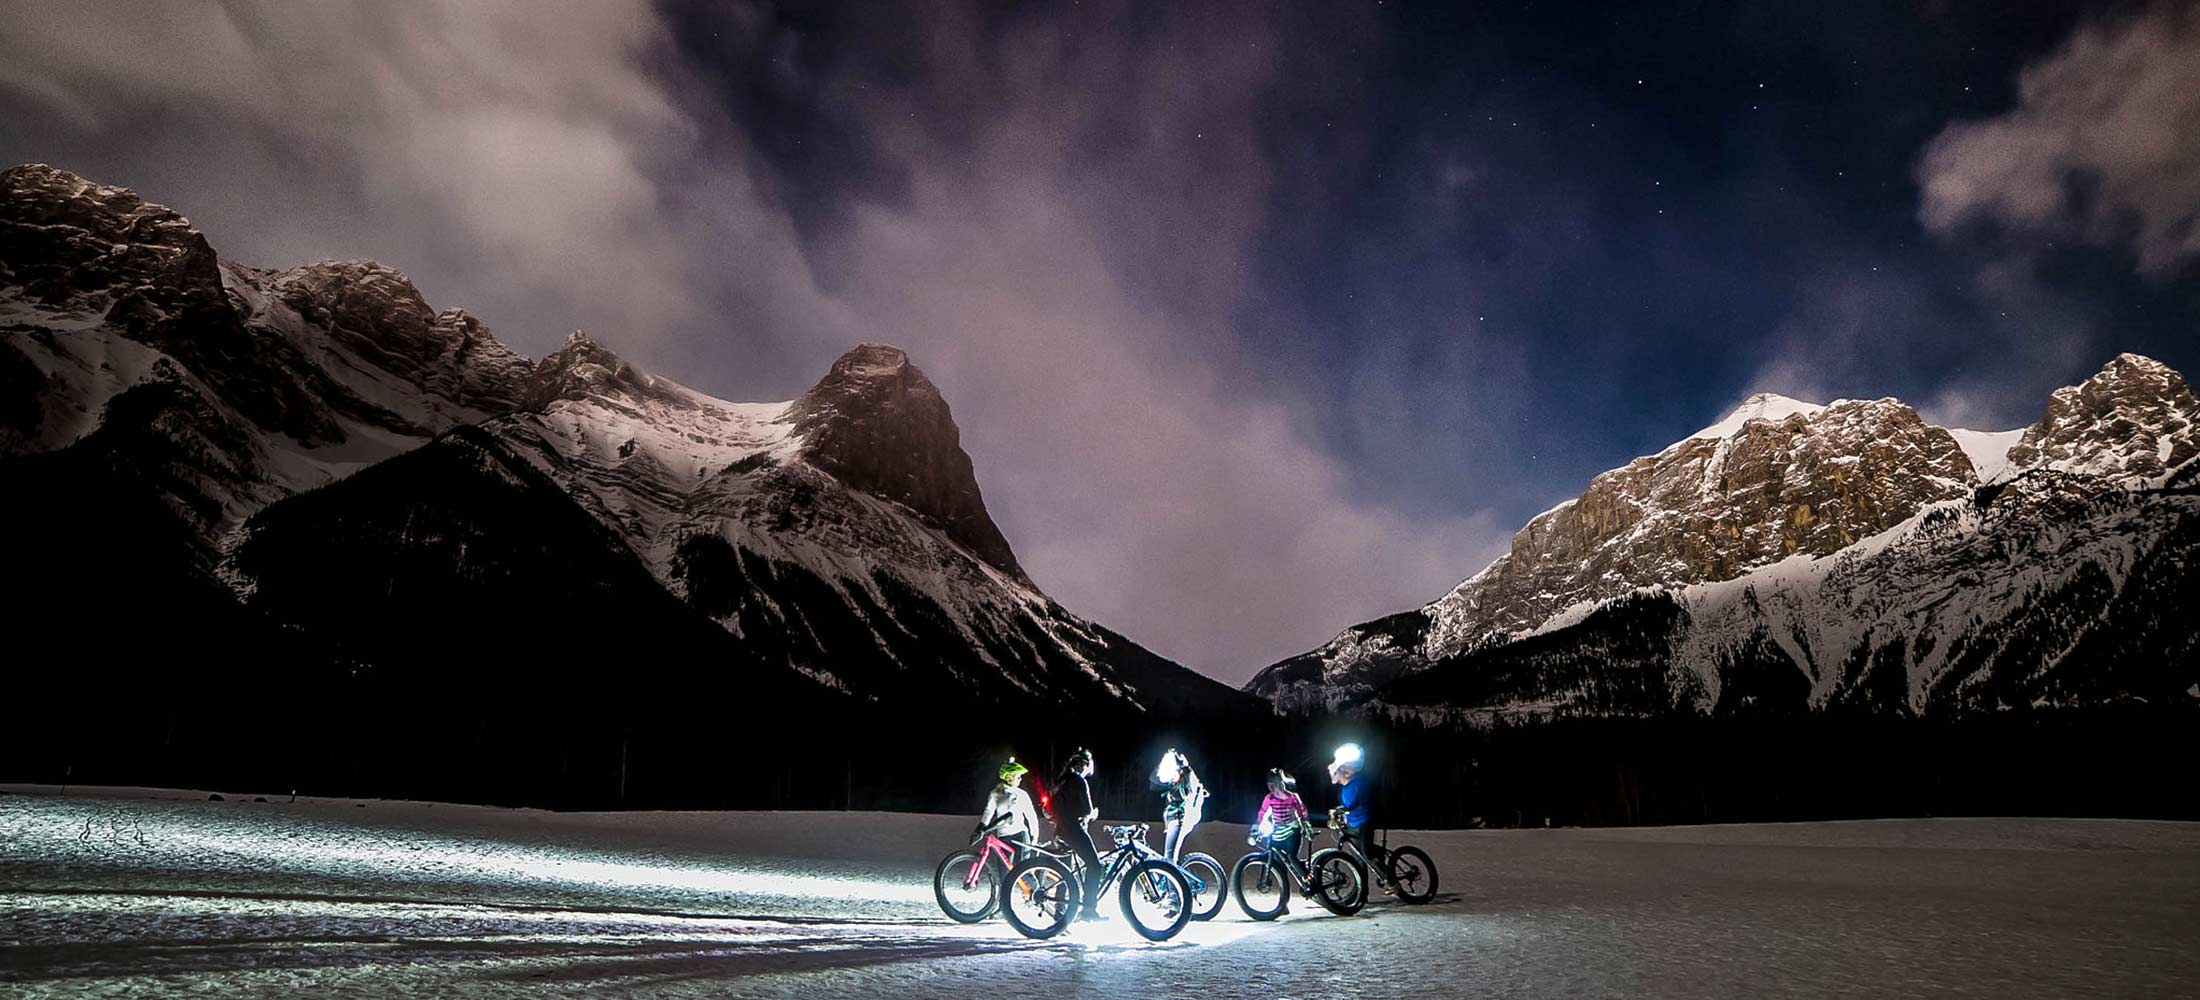 Night time winter bike ride in Canmore, Alberta